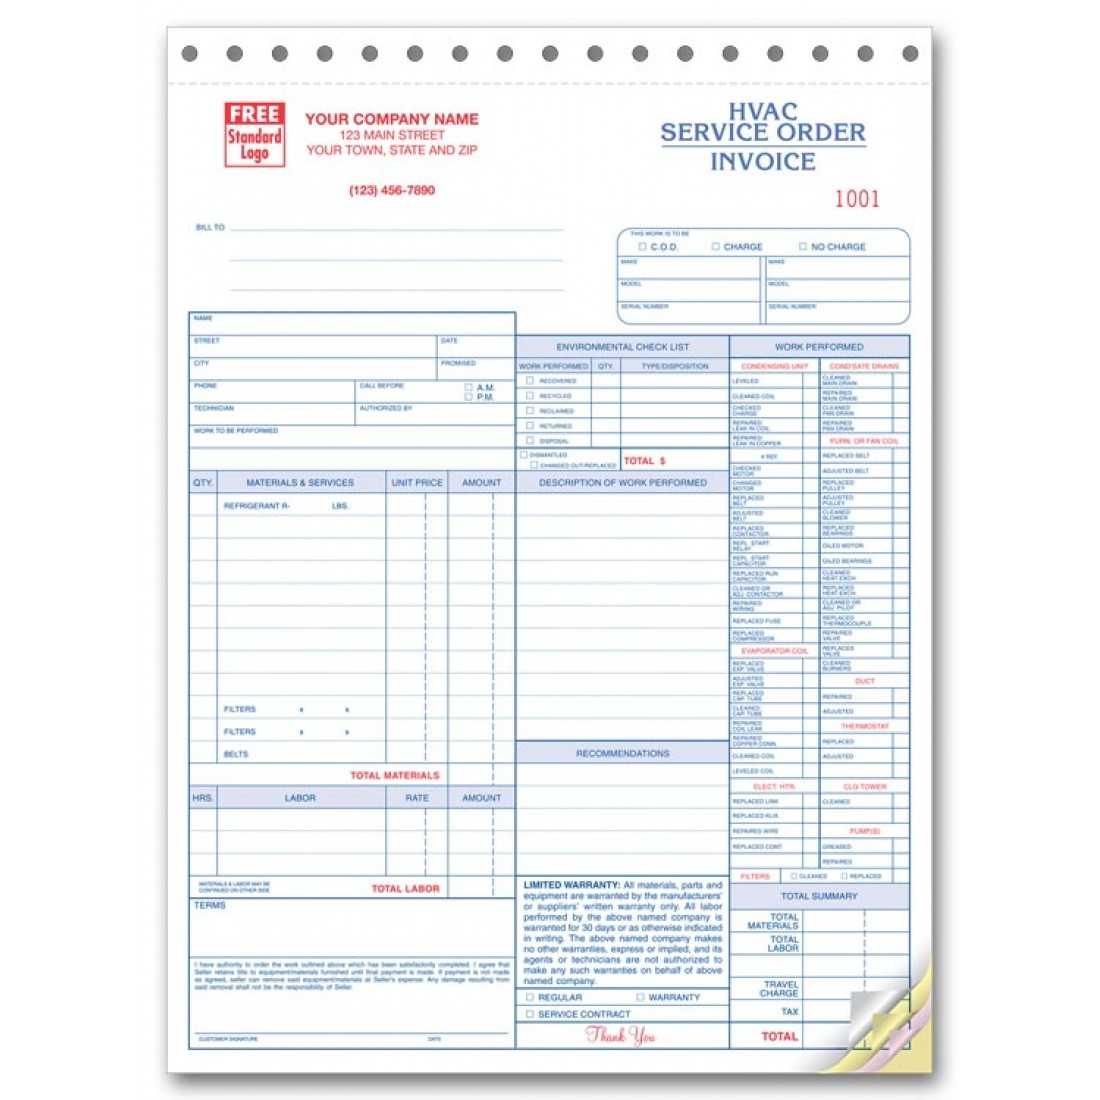 hvac service invoice forms free shipping With hvac service invoice forms